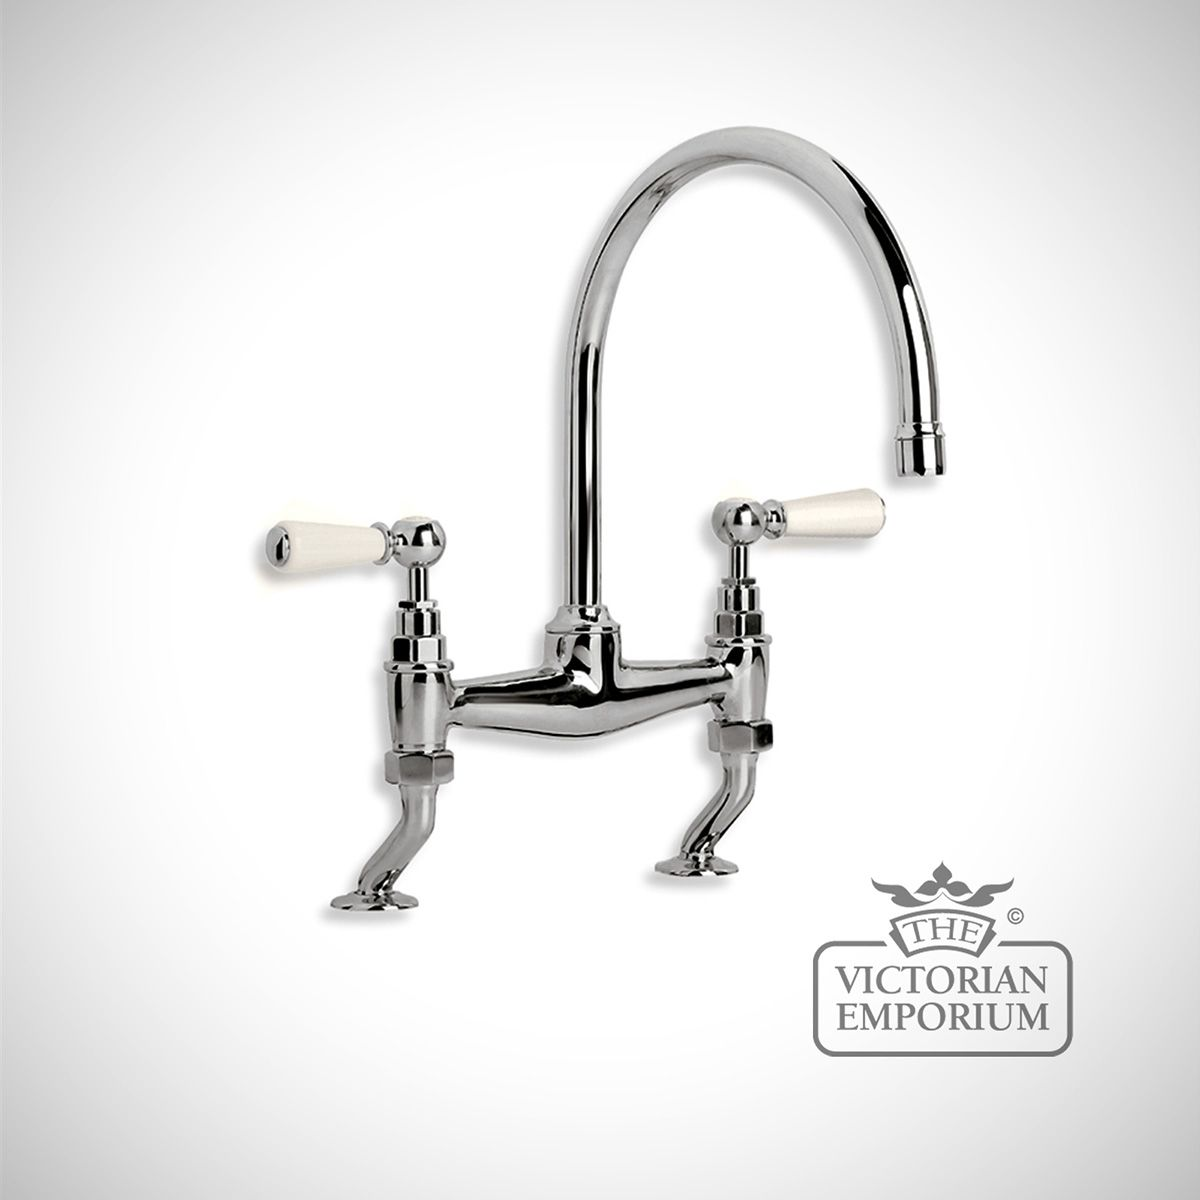 Tap Mixer Basin Bath Shower Br Crome Nickle Radiator Bathrom Traditional Victorian 19thcentry Steampunk Old Clical